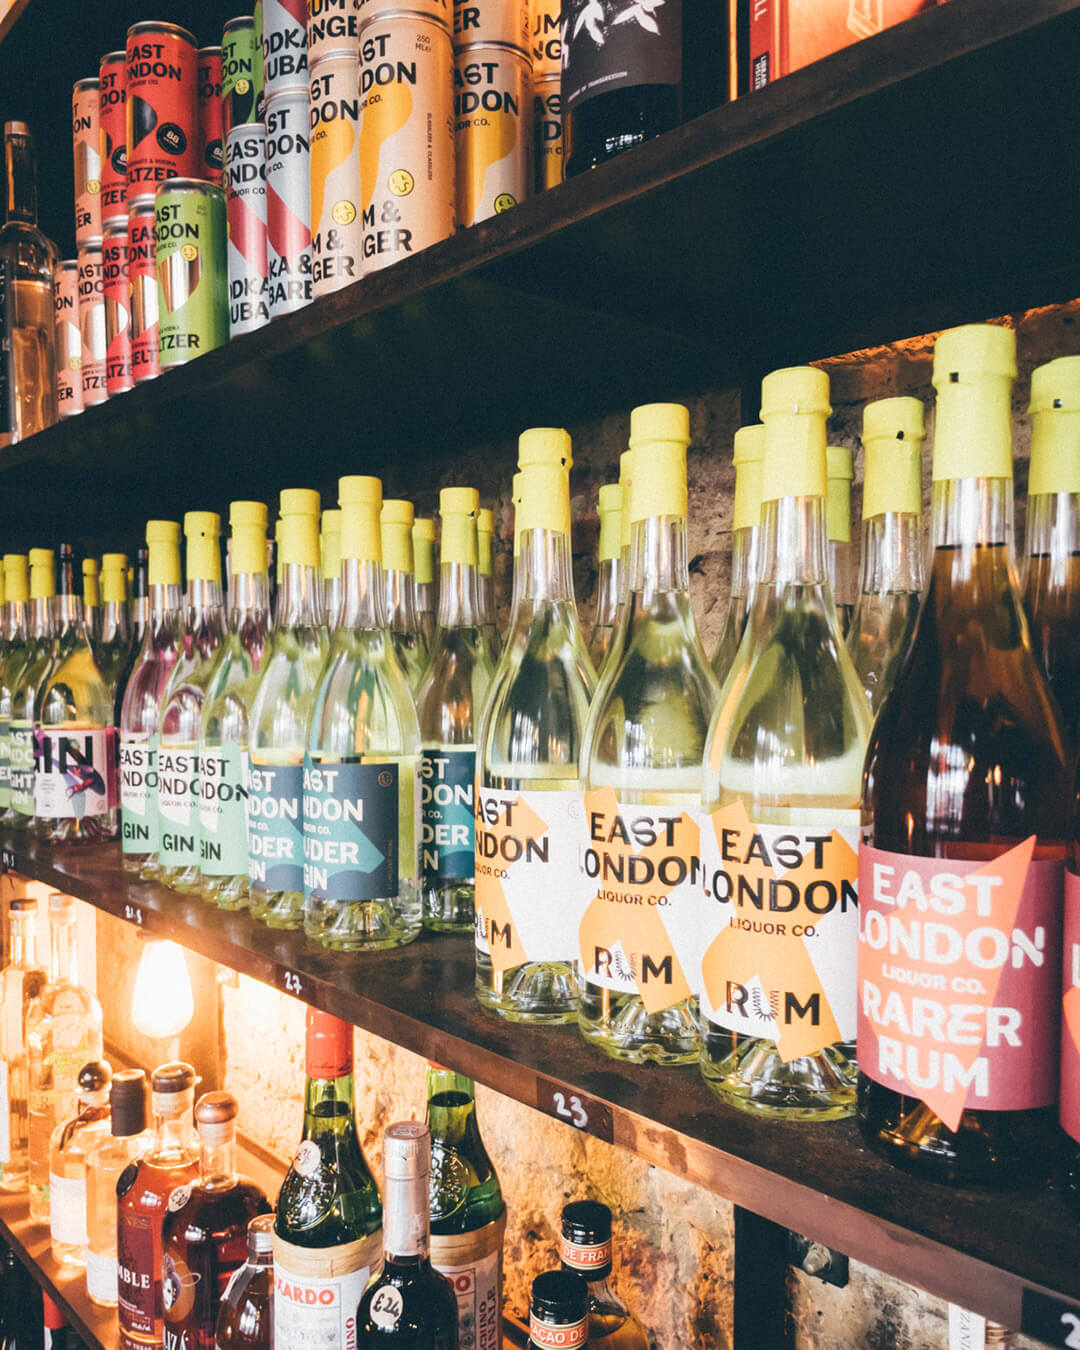 Shelving showing East London Liquor product, link clicks through to our mission to support small British Brands.